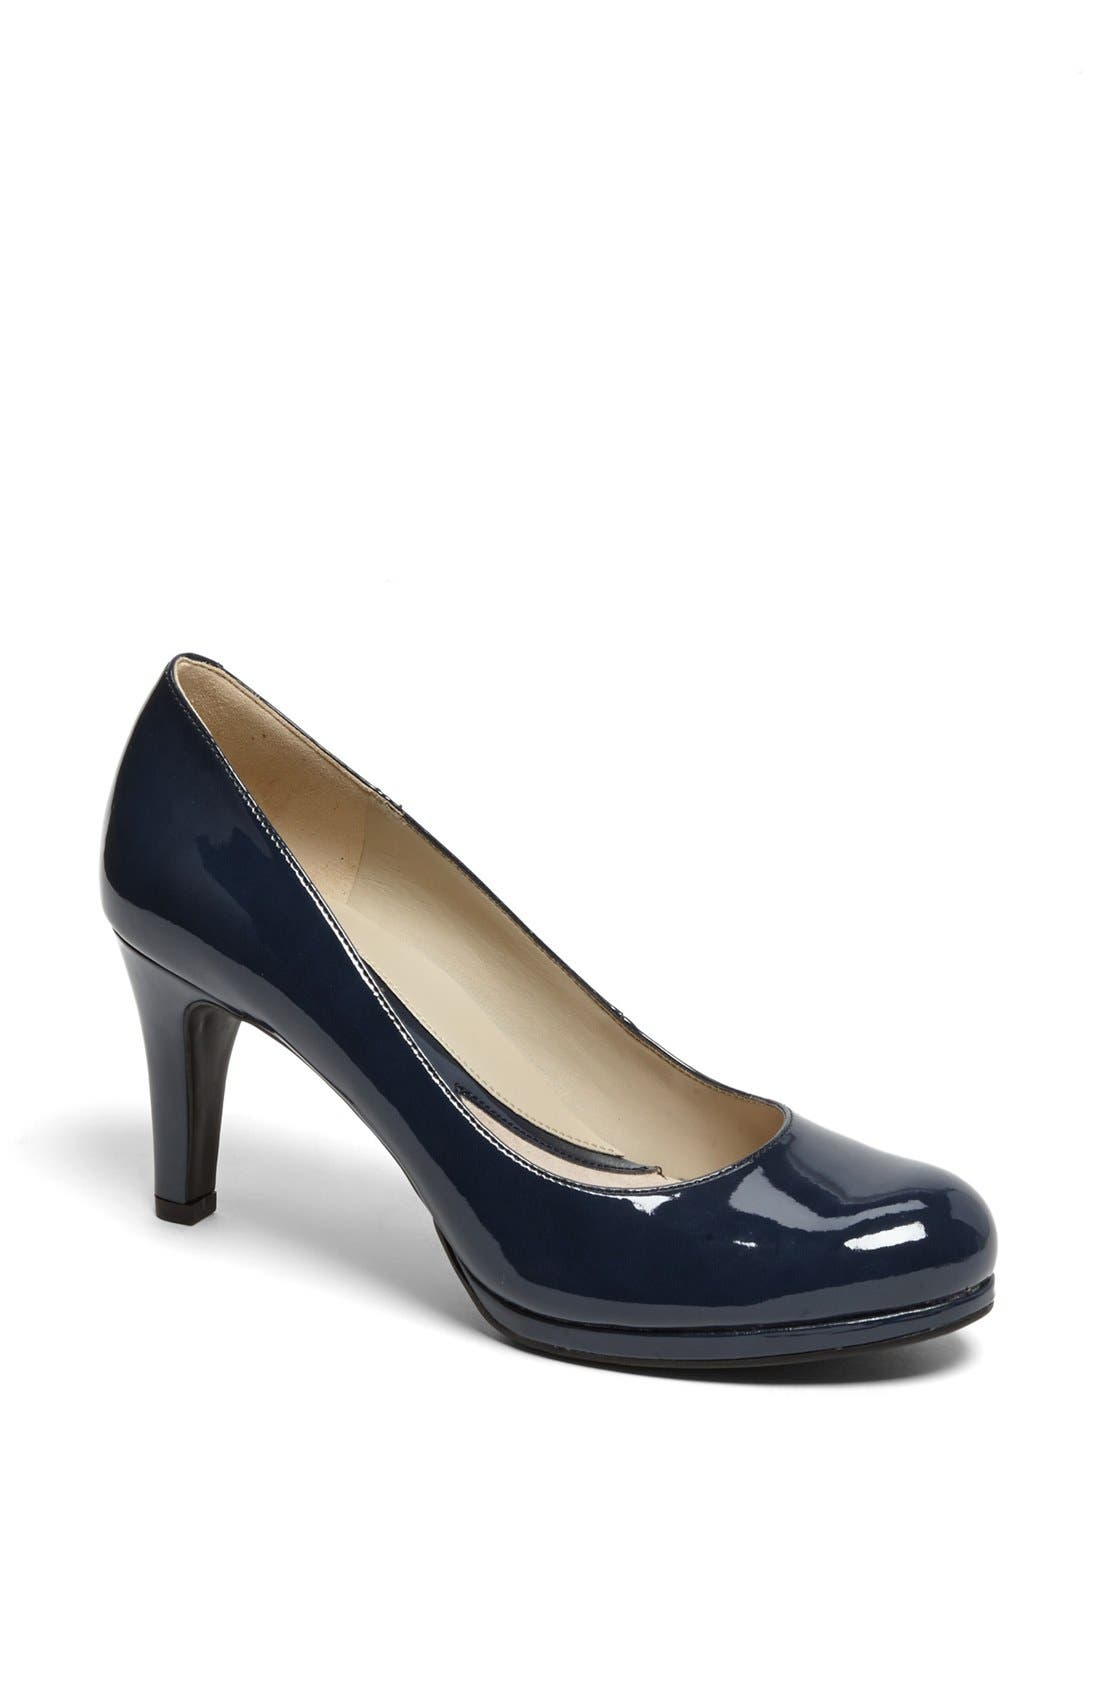 Main Image - Naturalizer 'Lennox' Pump